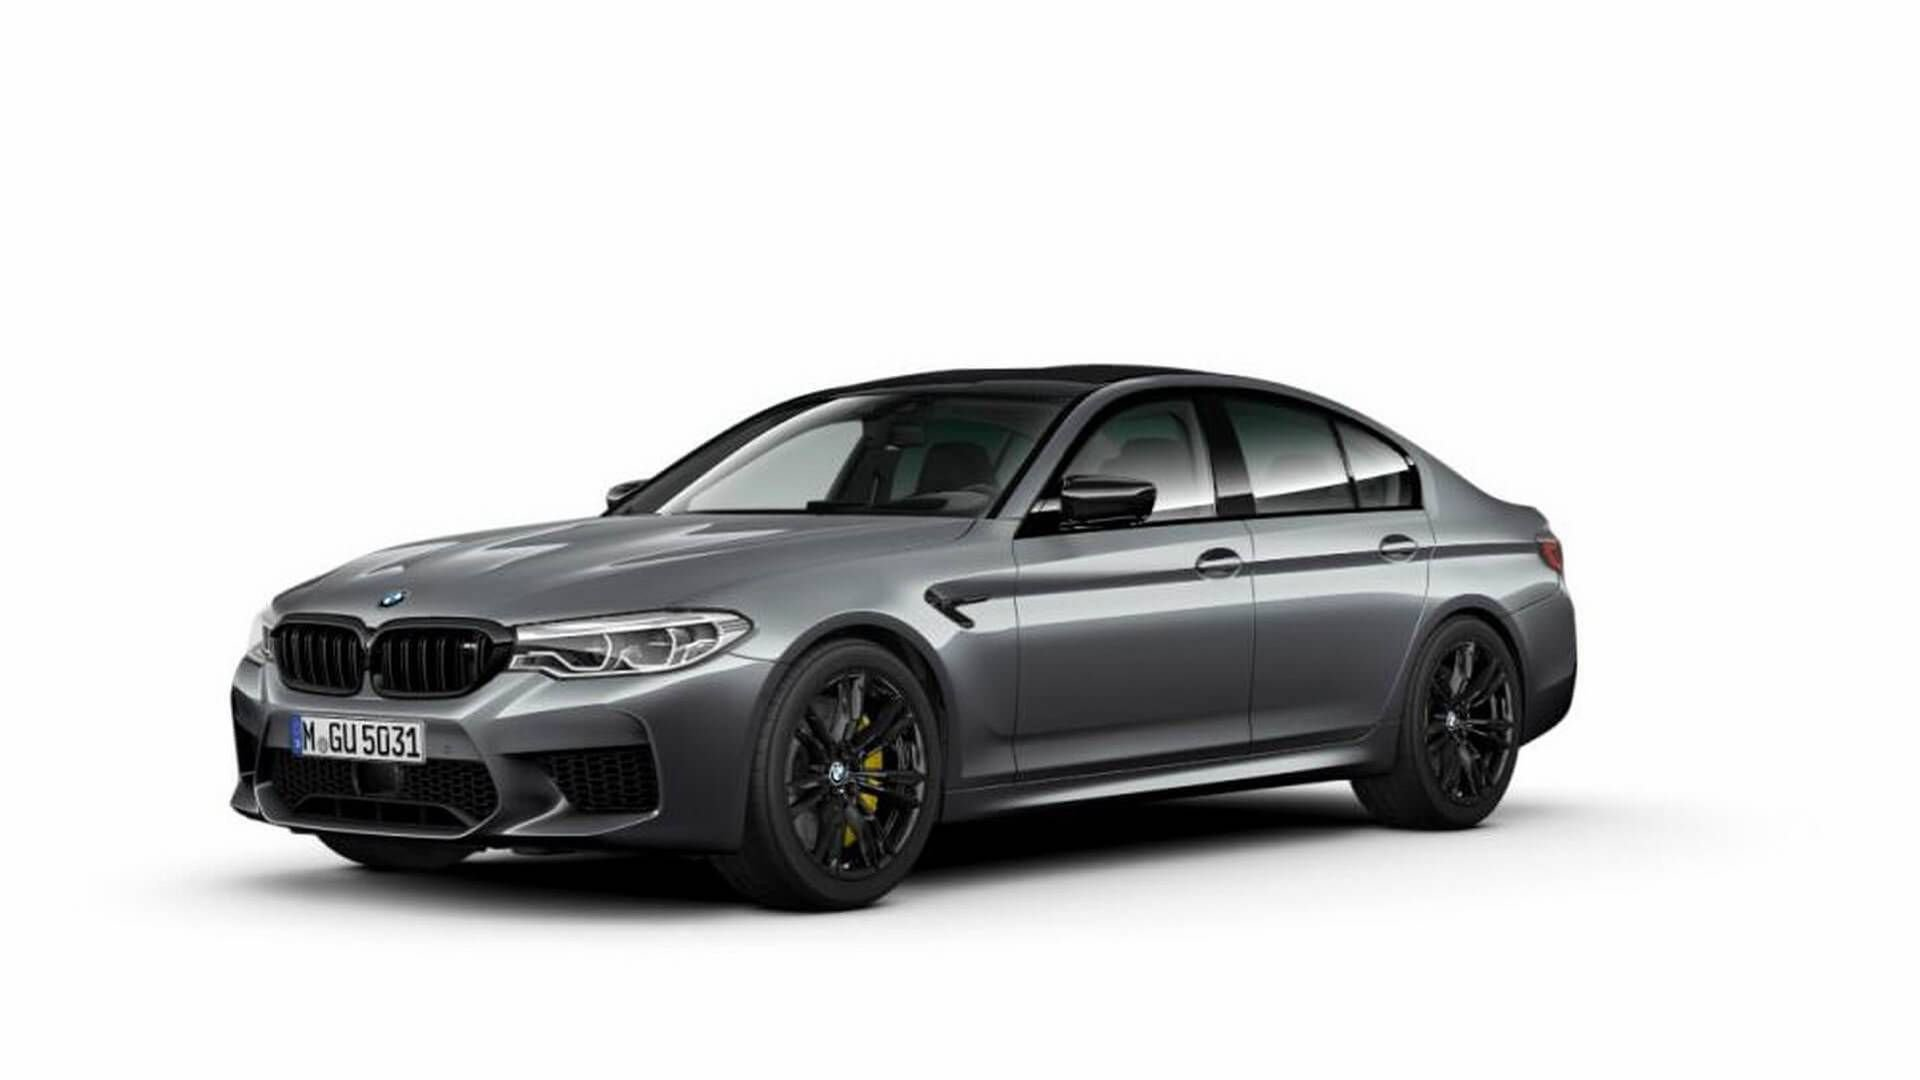 bmw-m5-with-the-competition-package-3.jpg